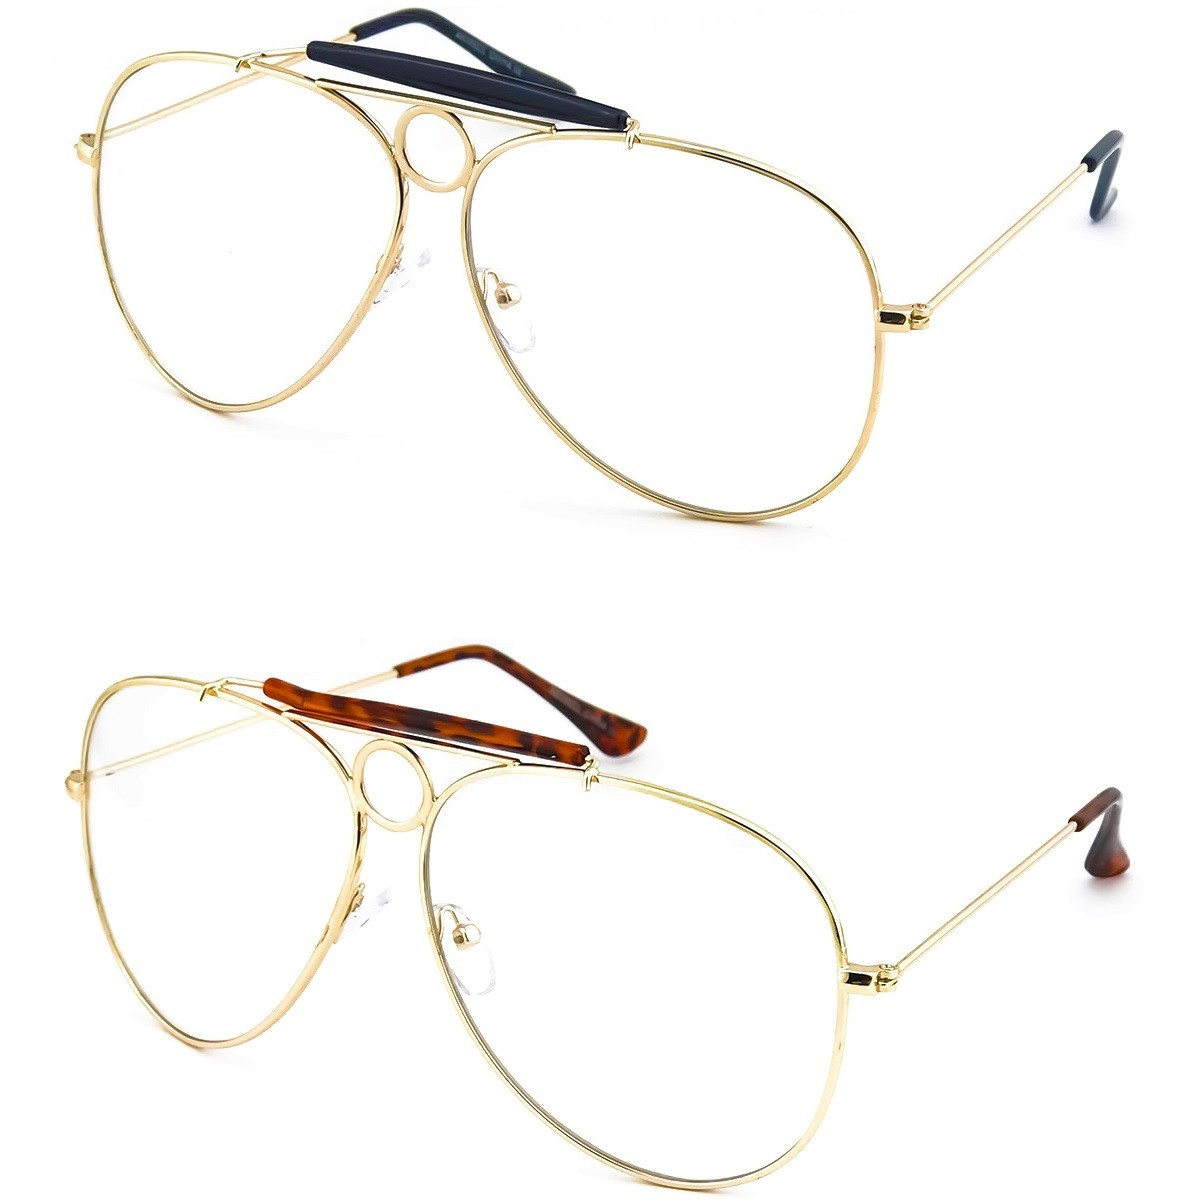 Glasses neutral KISS® - mod. FEAR AND loathing - optical frame JOHNNY DEPP man woman Style AVIATORE